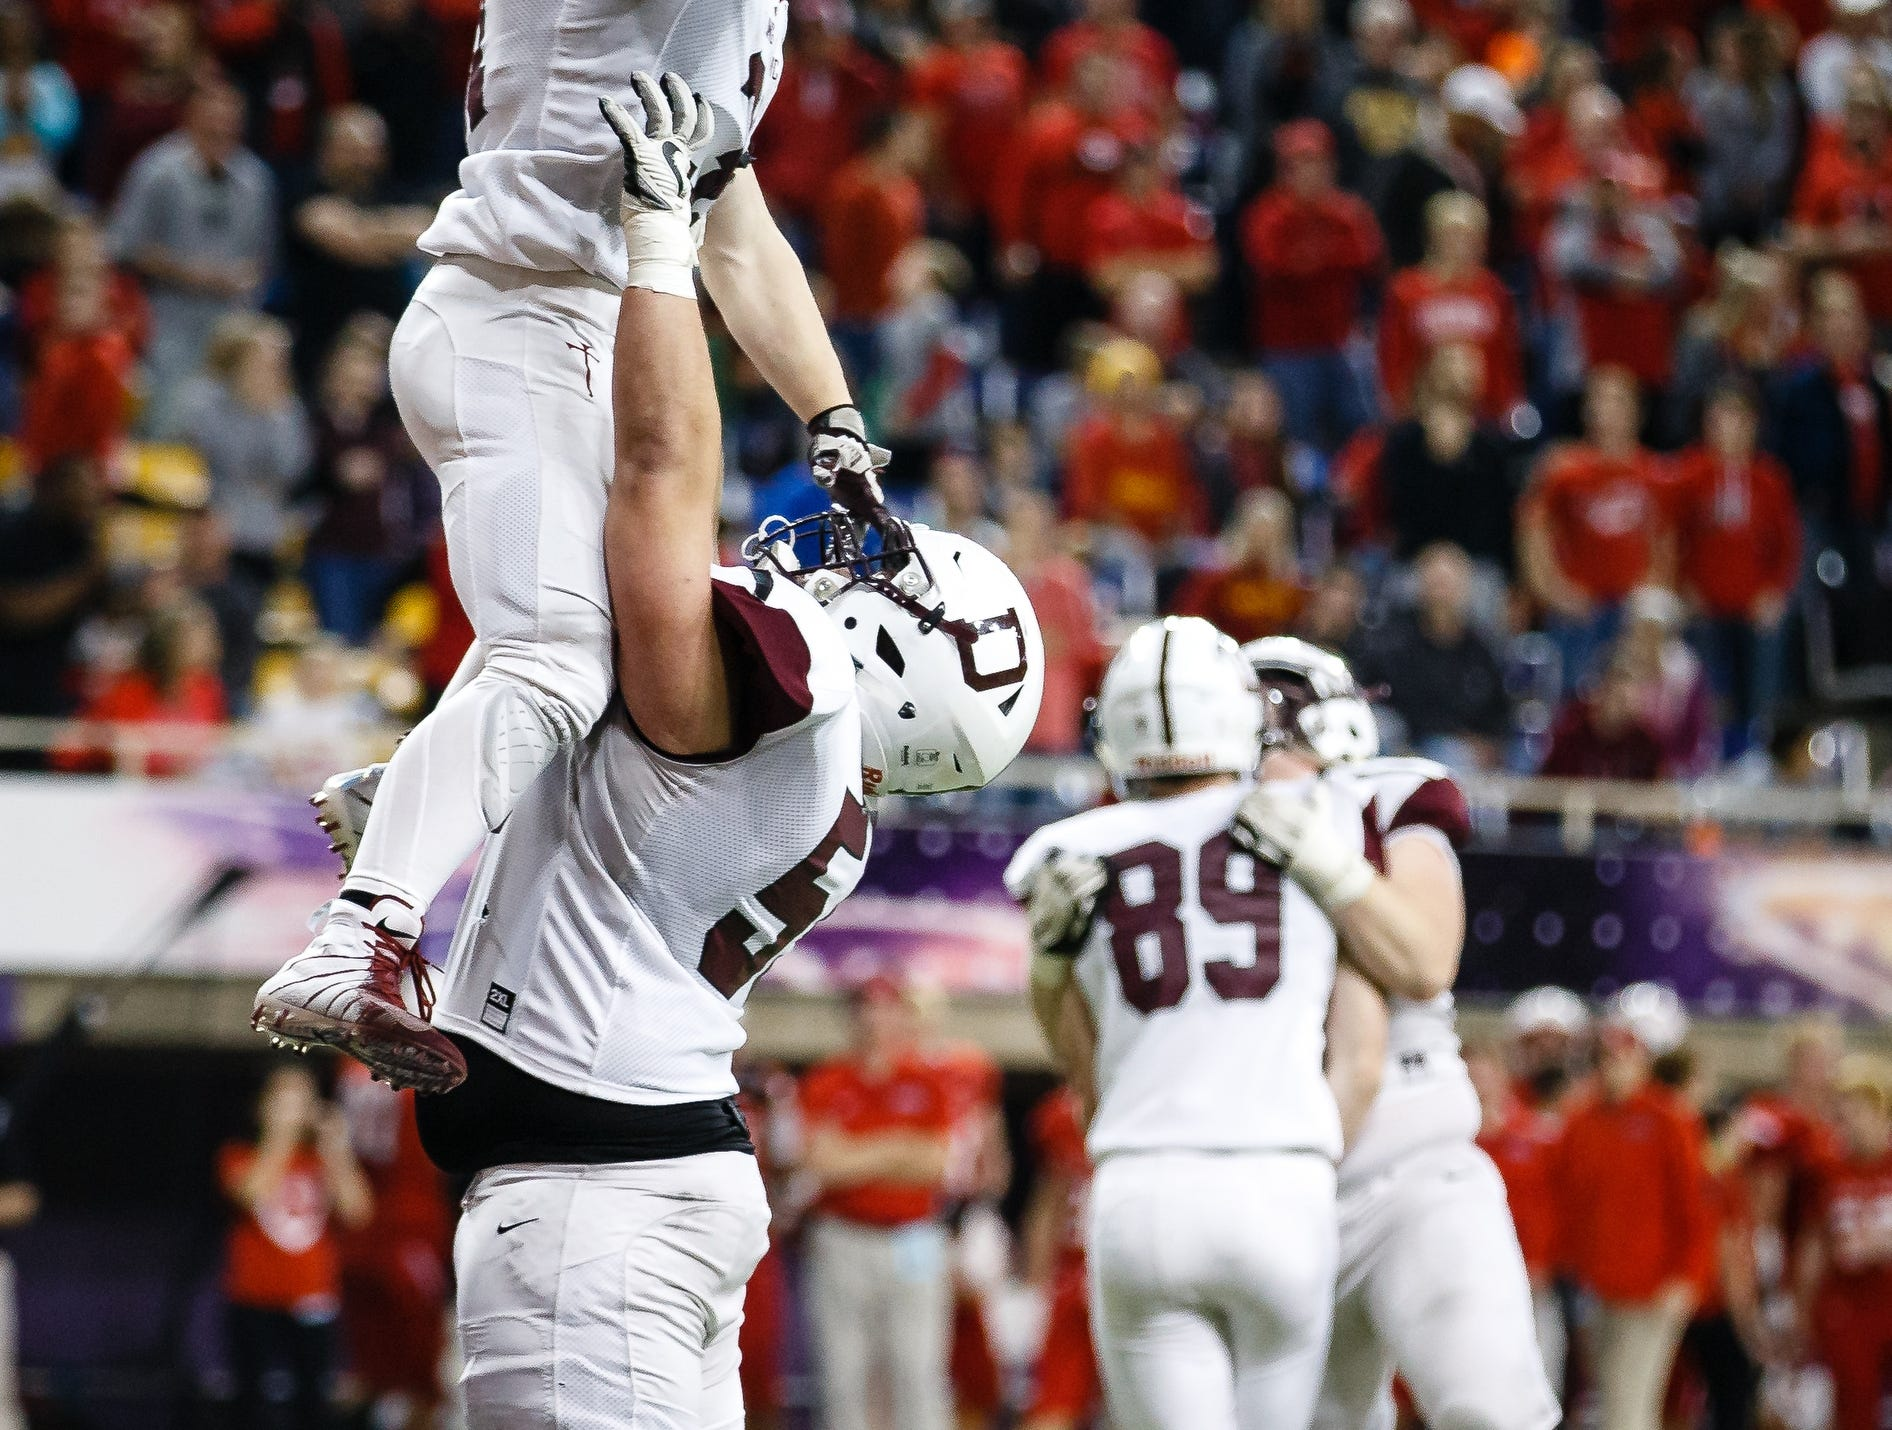 Dowling Catholic's Teagan Johnson (31) is hoisted by Dowling Catholic's Alex Kirton (55) after Johnson ran in for a touchdown making the score 13-16 during their class 4A state championship football game on Friday, Nov. 16, 2018, in Cedar Falls. Dowling Catholic would go on to defeat Cedar Falls 22-16 and win their sixth state title.